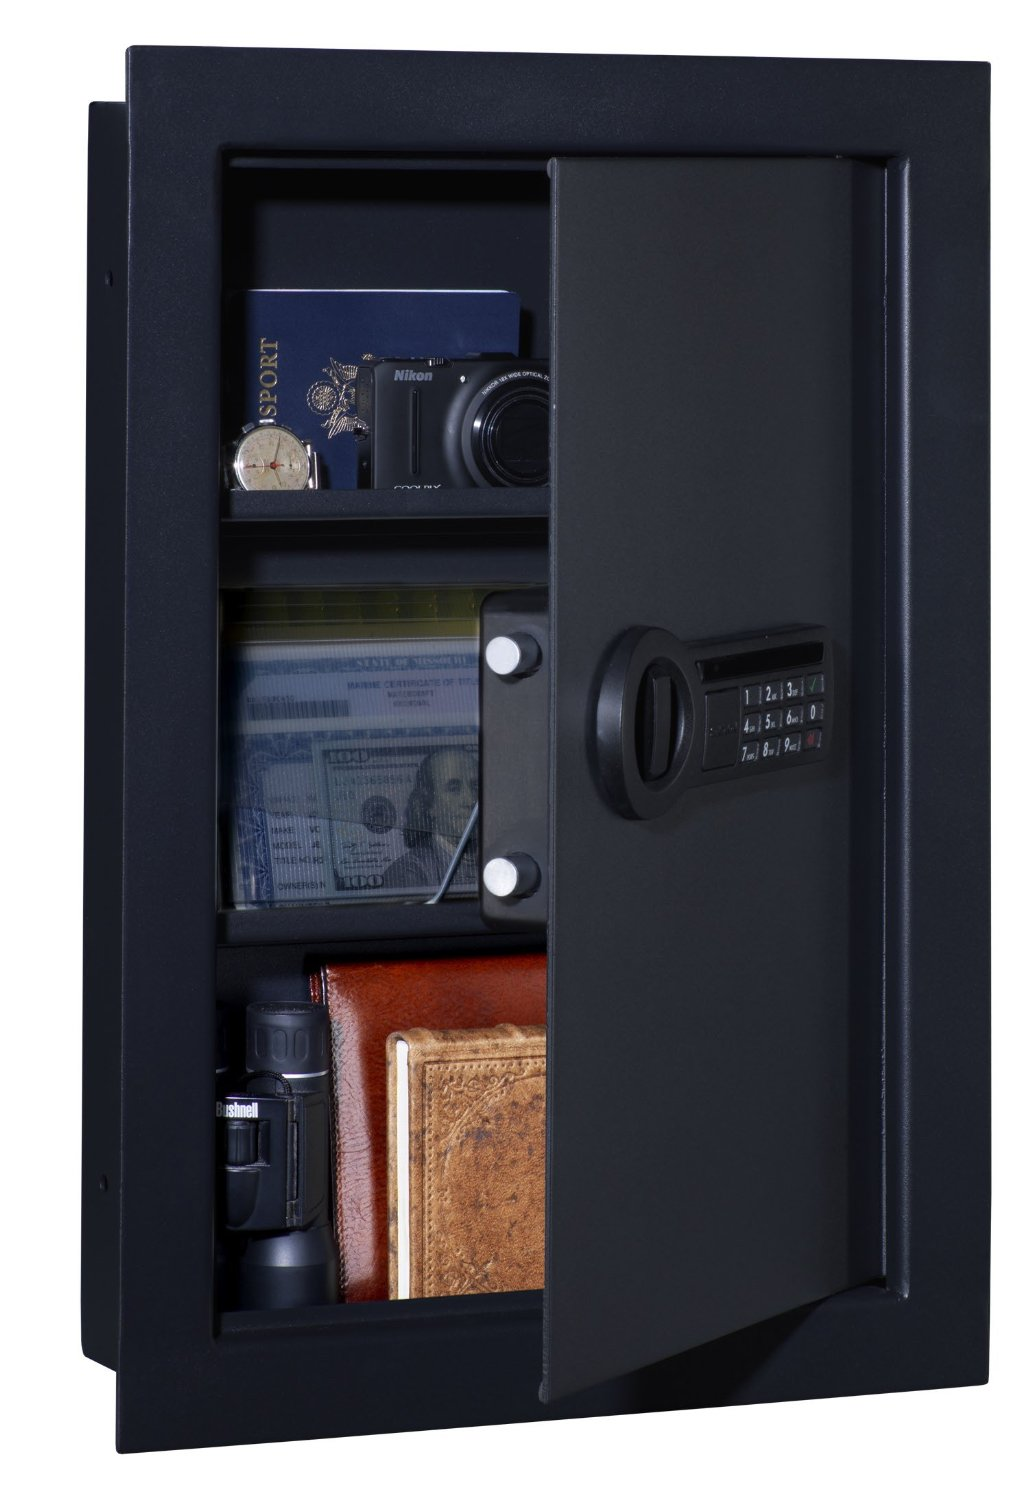 Stack-On Wall Safe with Electronic Lock Available in Two Colors (Black on Black, or Silver on Black)